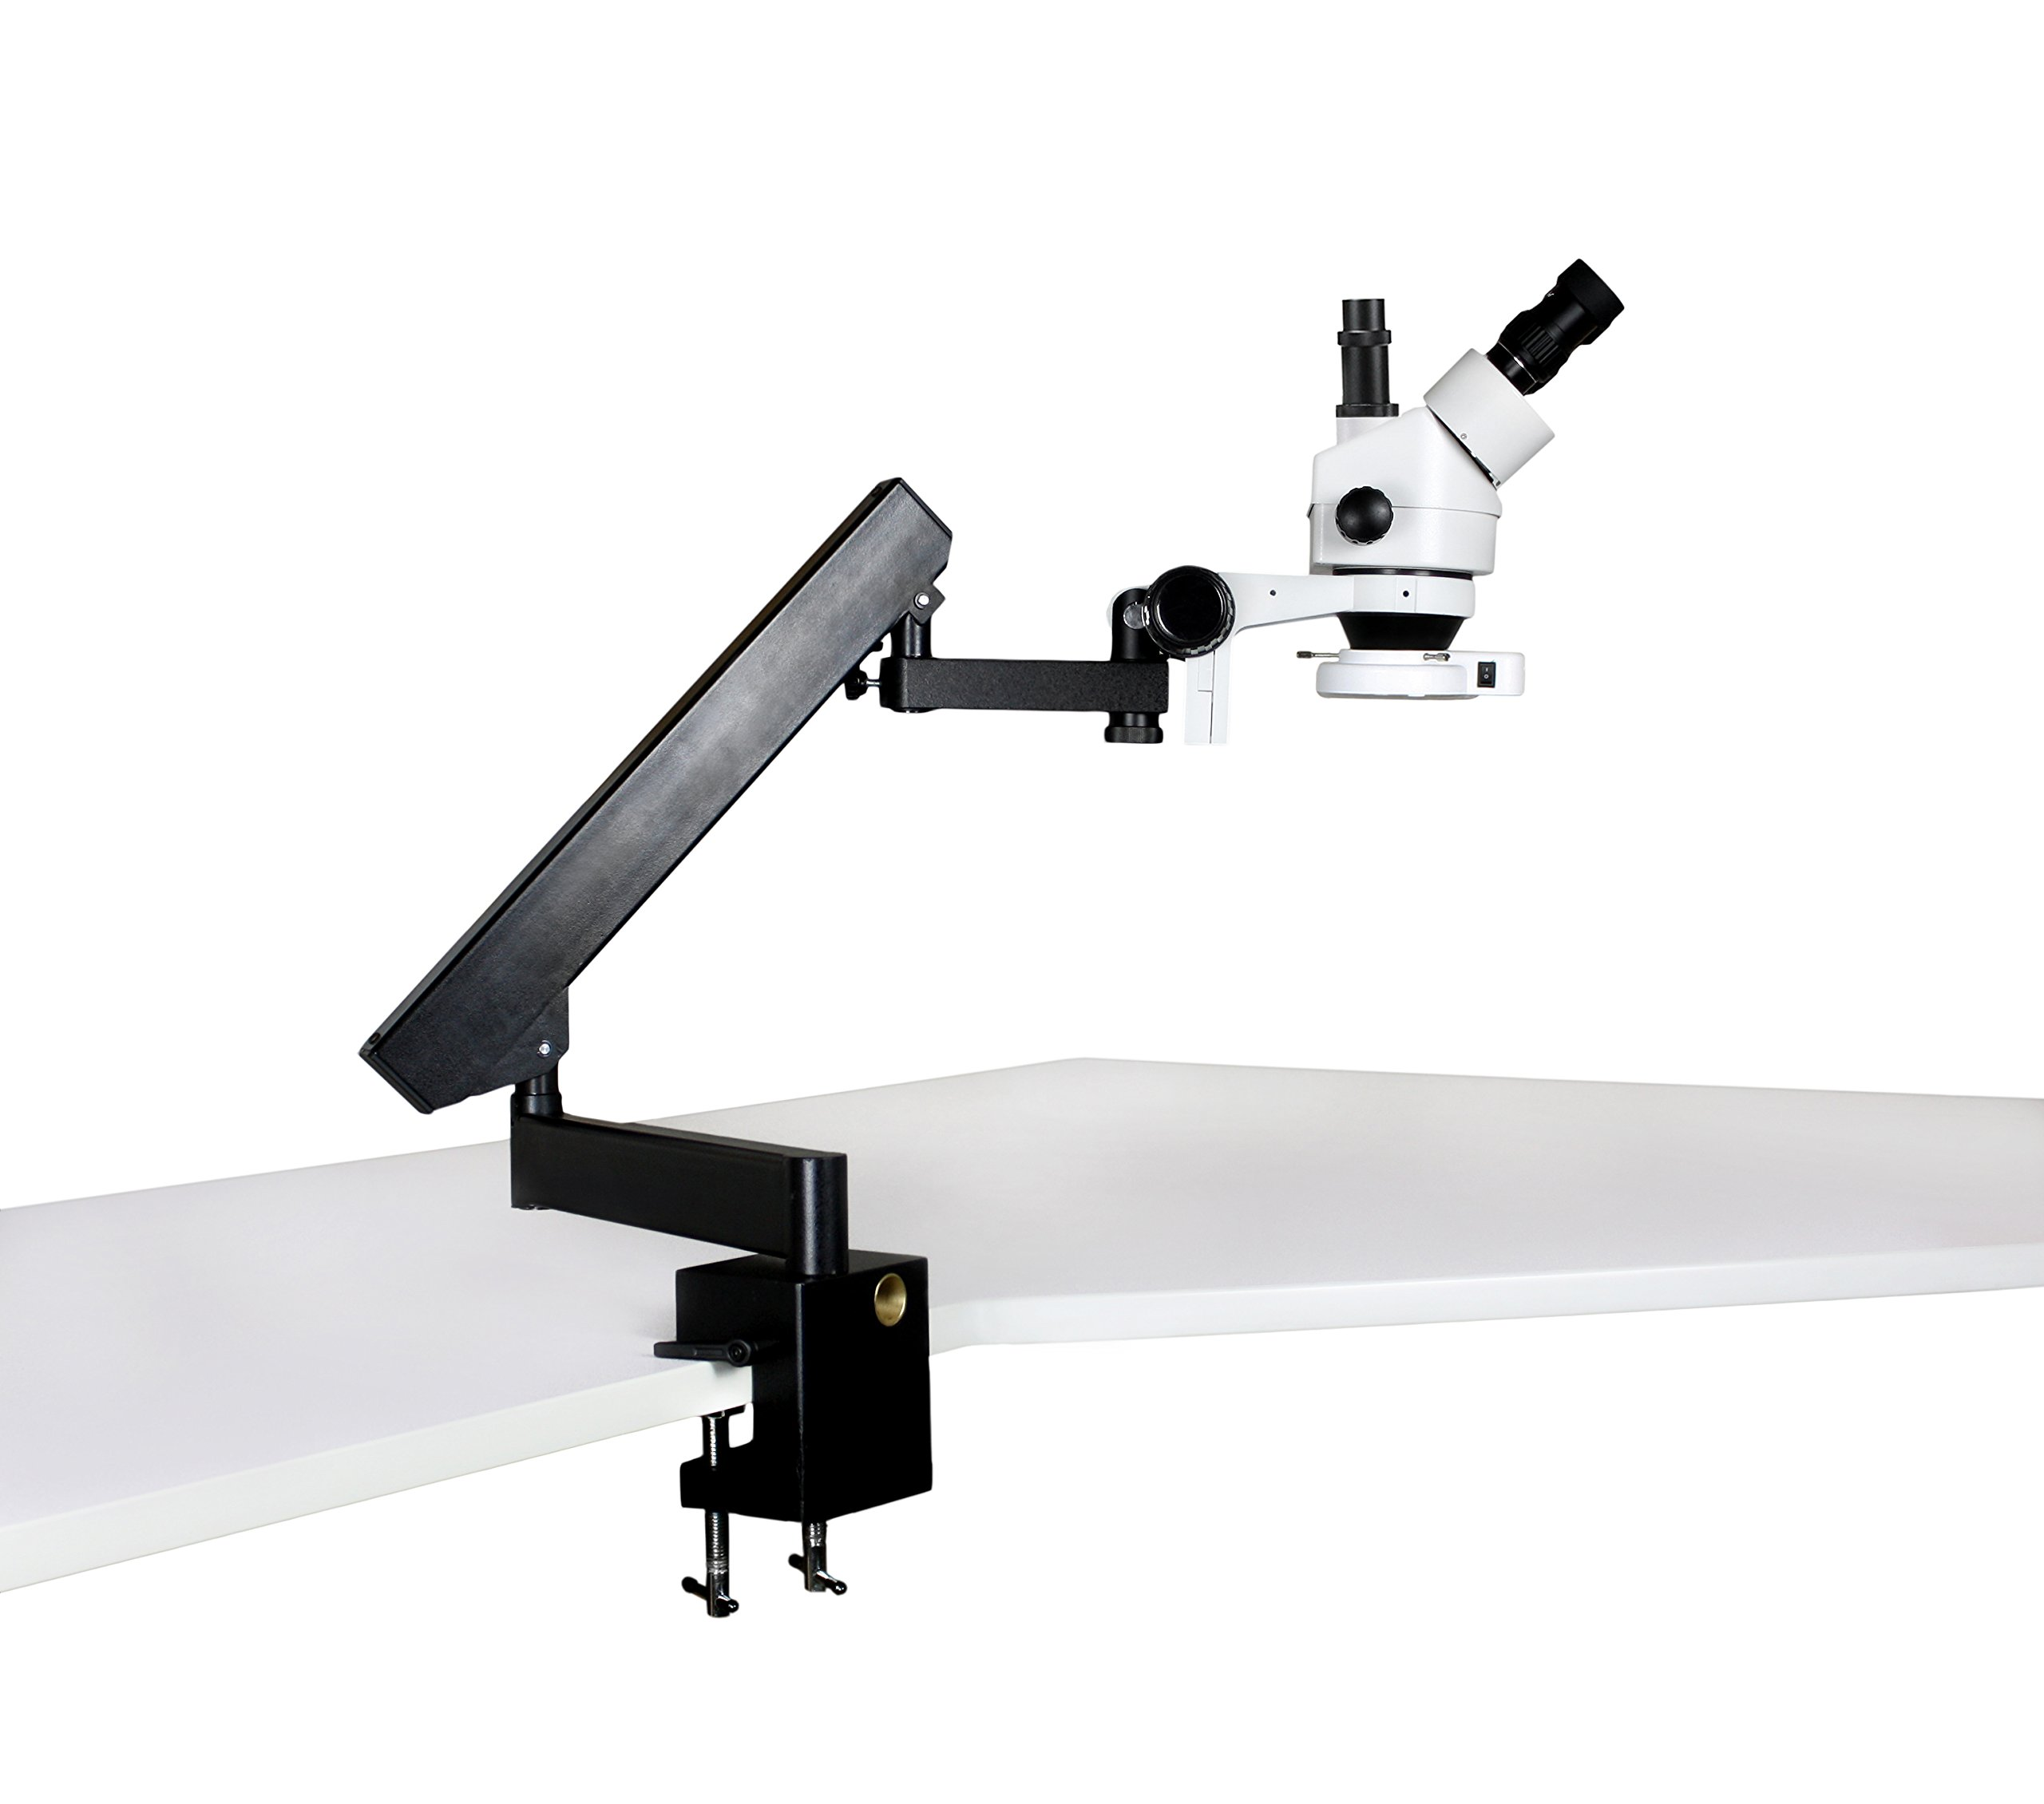 Vision Scientific VS-7F-IFR07 Trinocular Zoom Stereo Microscope, 10x Widefield Eyepiece, 0.7x—4.5x Zoom Range, 7x—45x Magnification Range, Articulating Arm Clamp Stand, 144-LED Ring Light